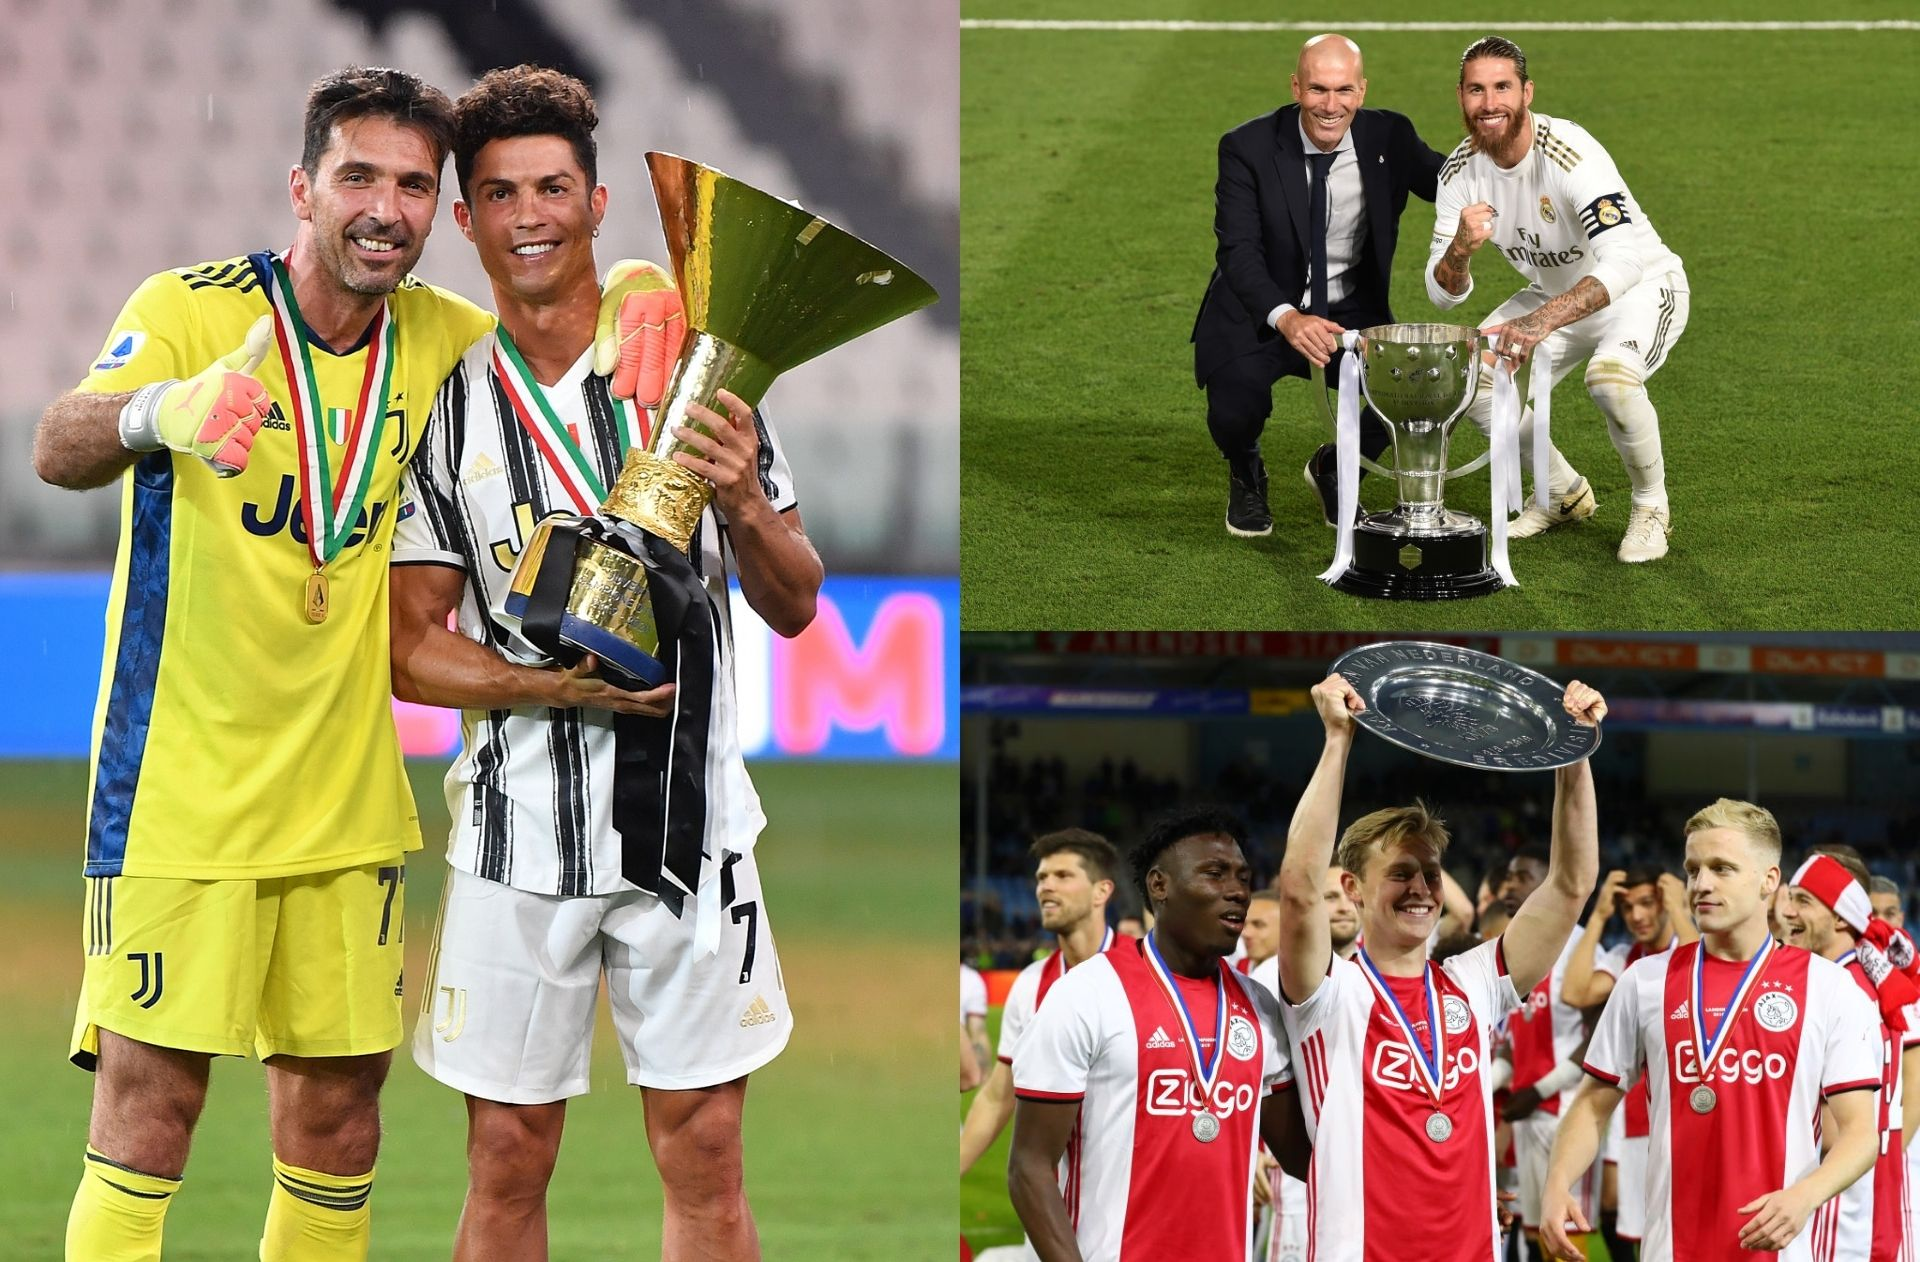 The 10 clubs with the most league titles in European football